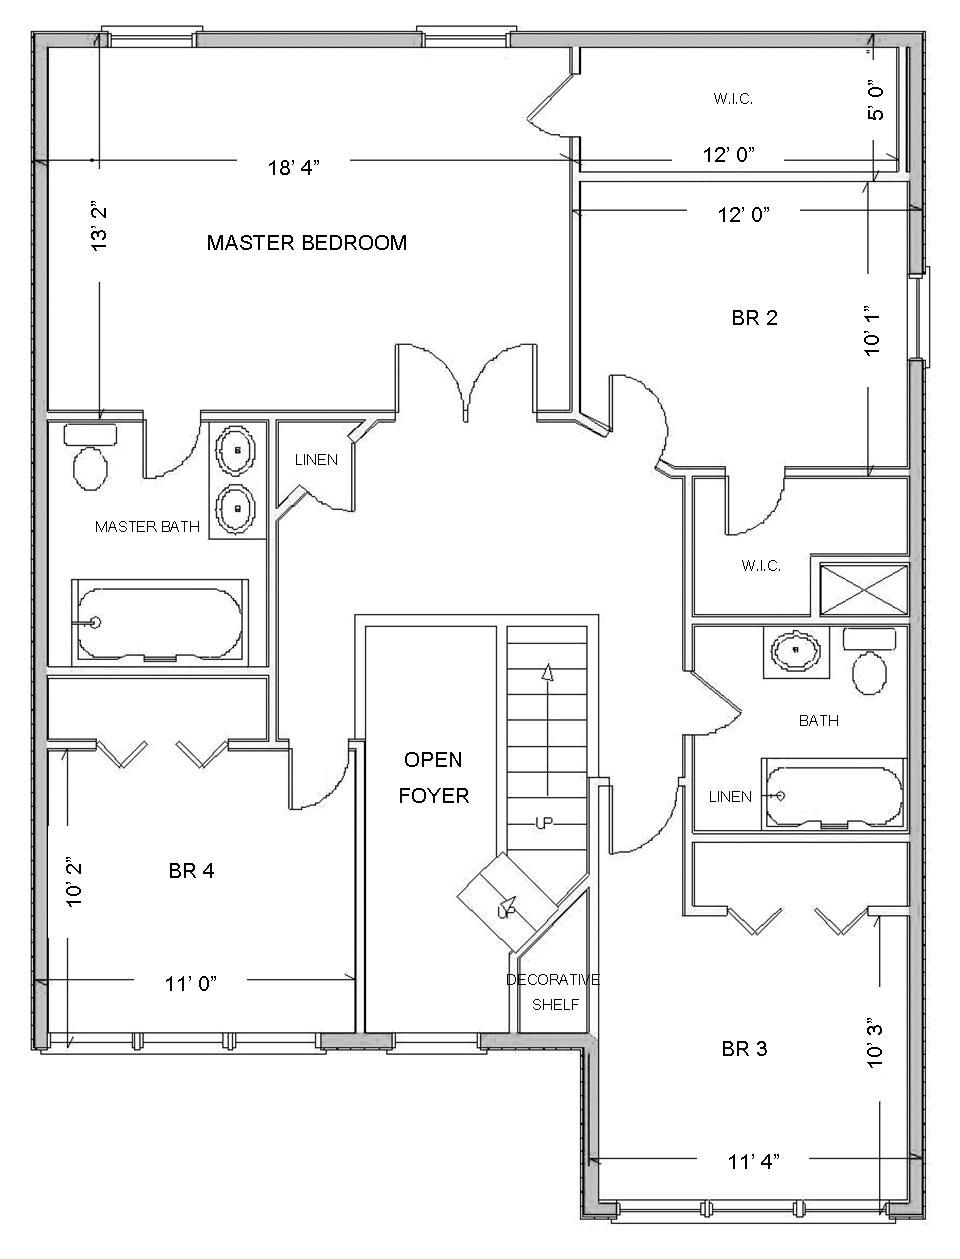 Digital Smart Draw Floor Plan With Smartdraw Software House